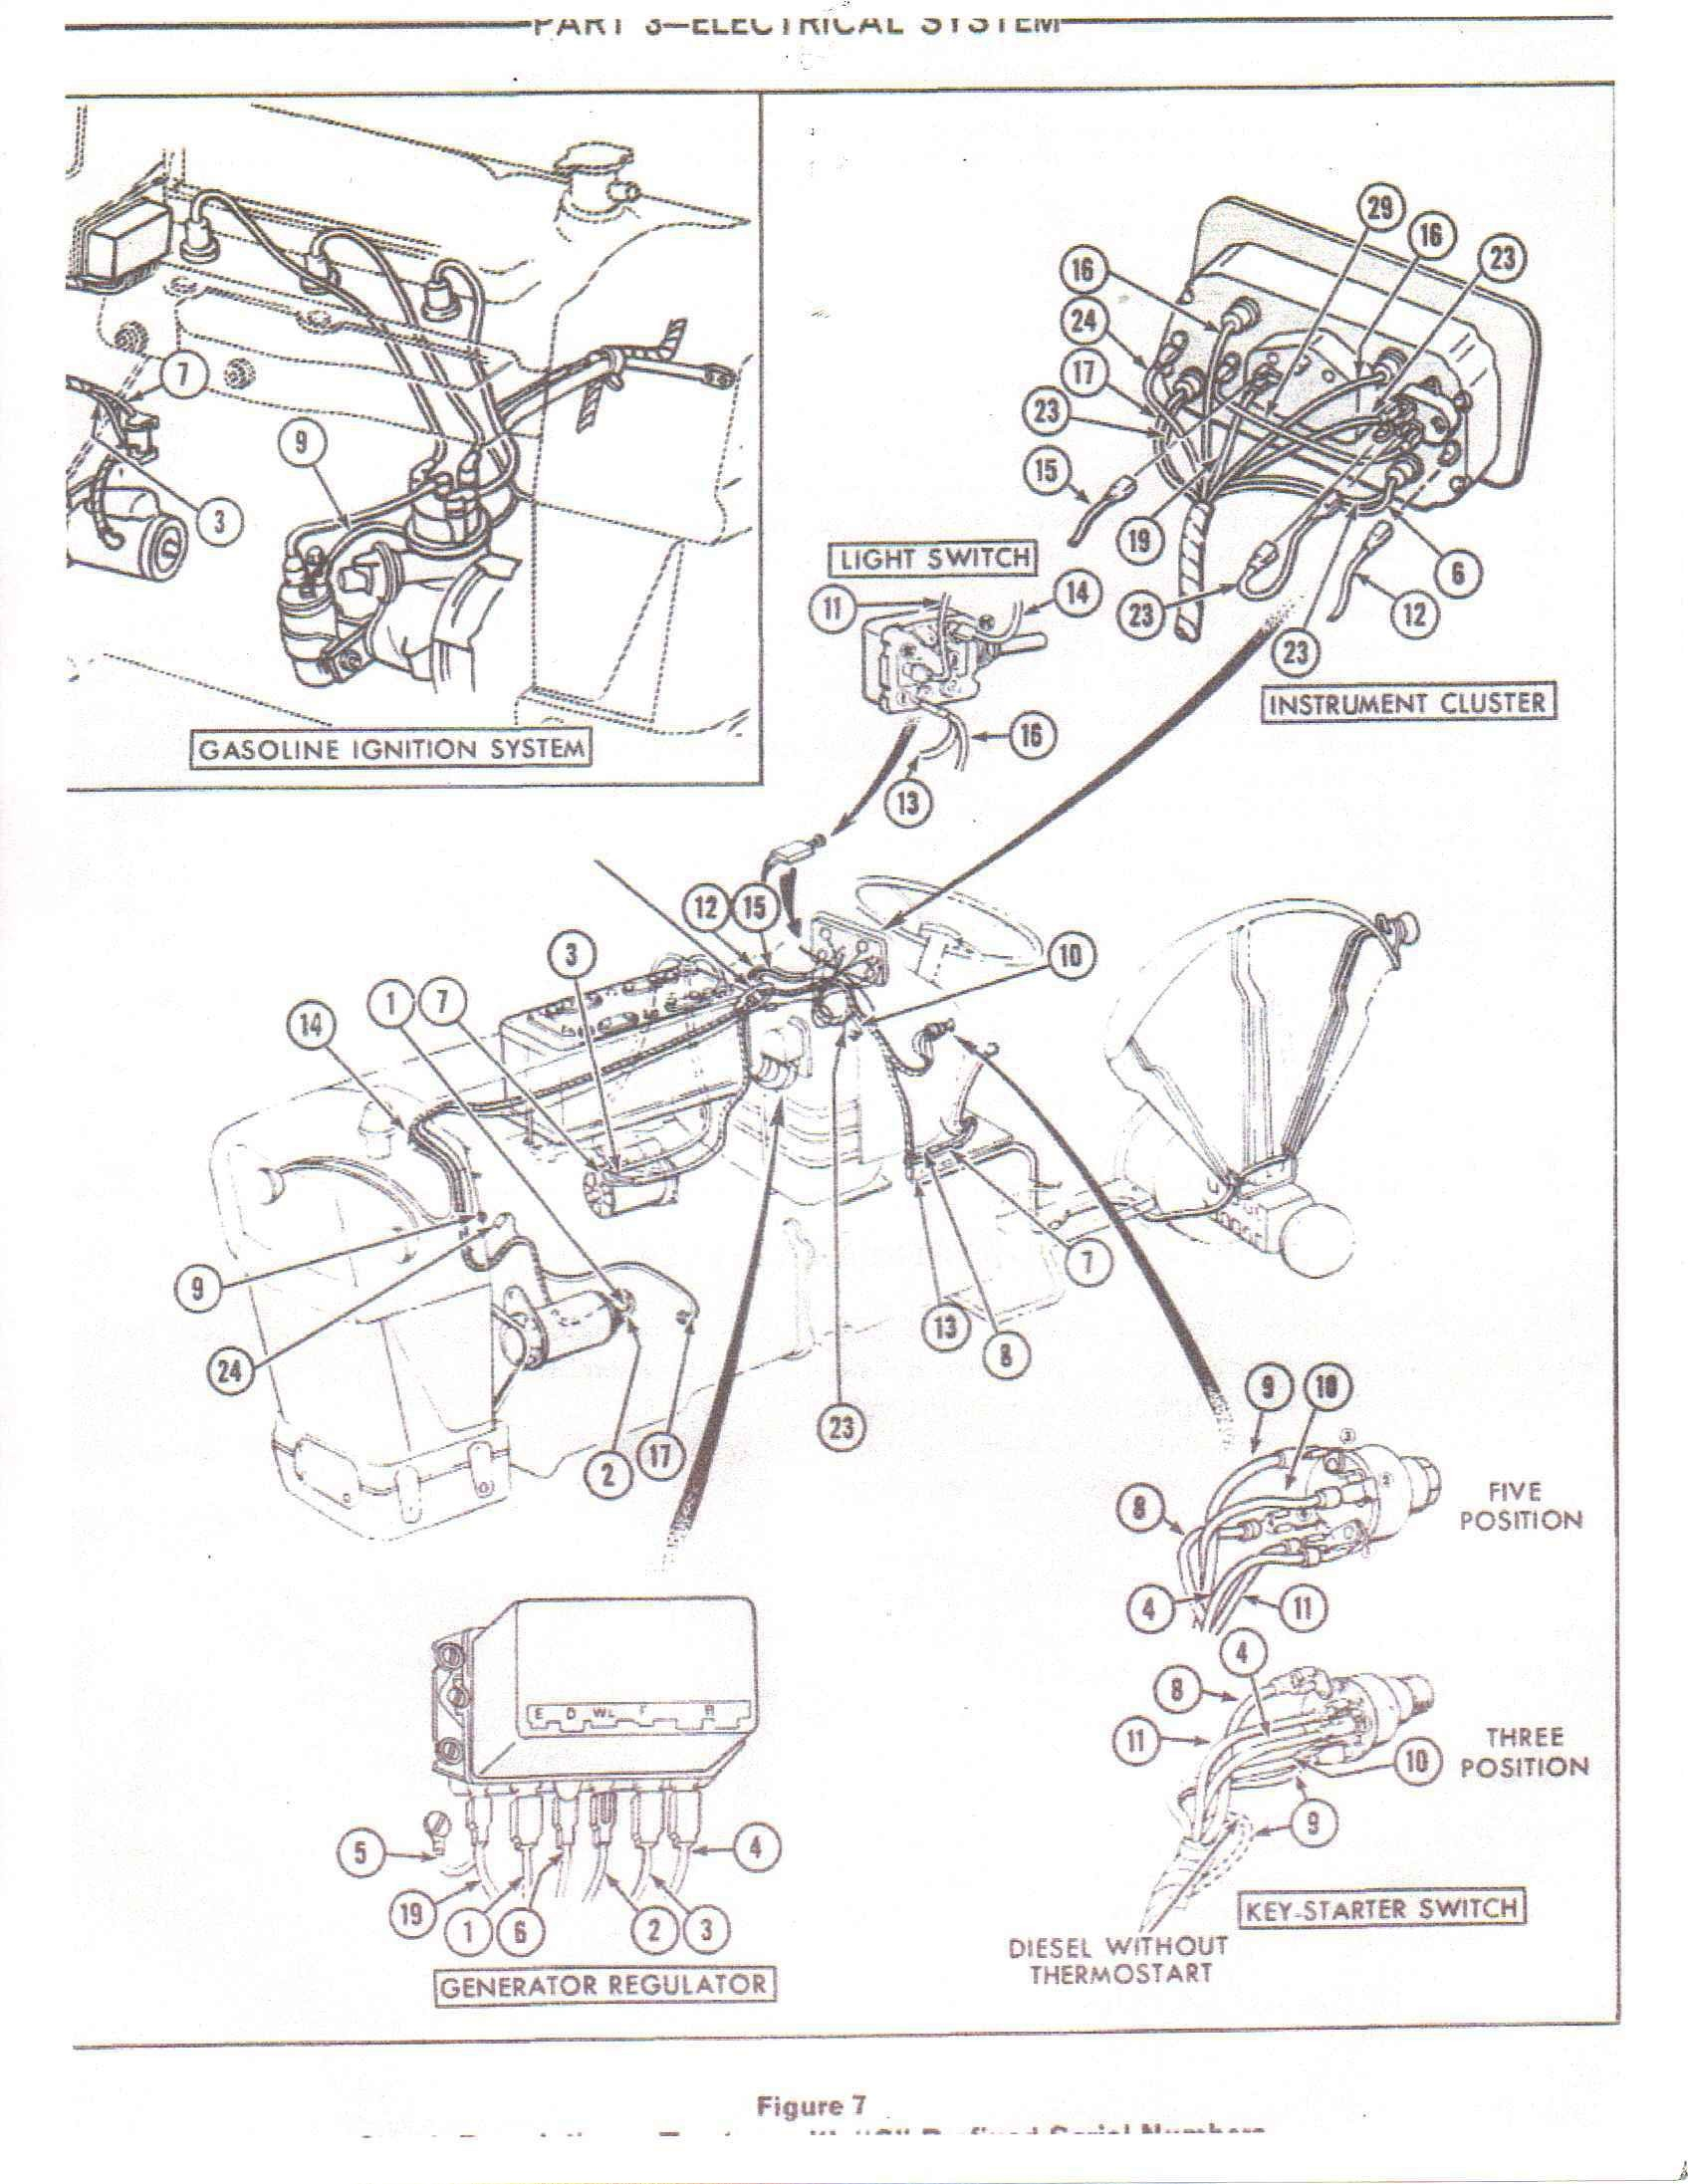 ford 3910 wiring diagram wiring diagram schematics 7700 Ford Tractor Problems wiring diagram for a 3910 ford tractor simple wiring schema ford ignition coil wiring diagram ford 3910 wiring diagram